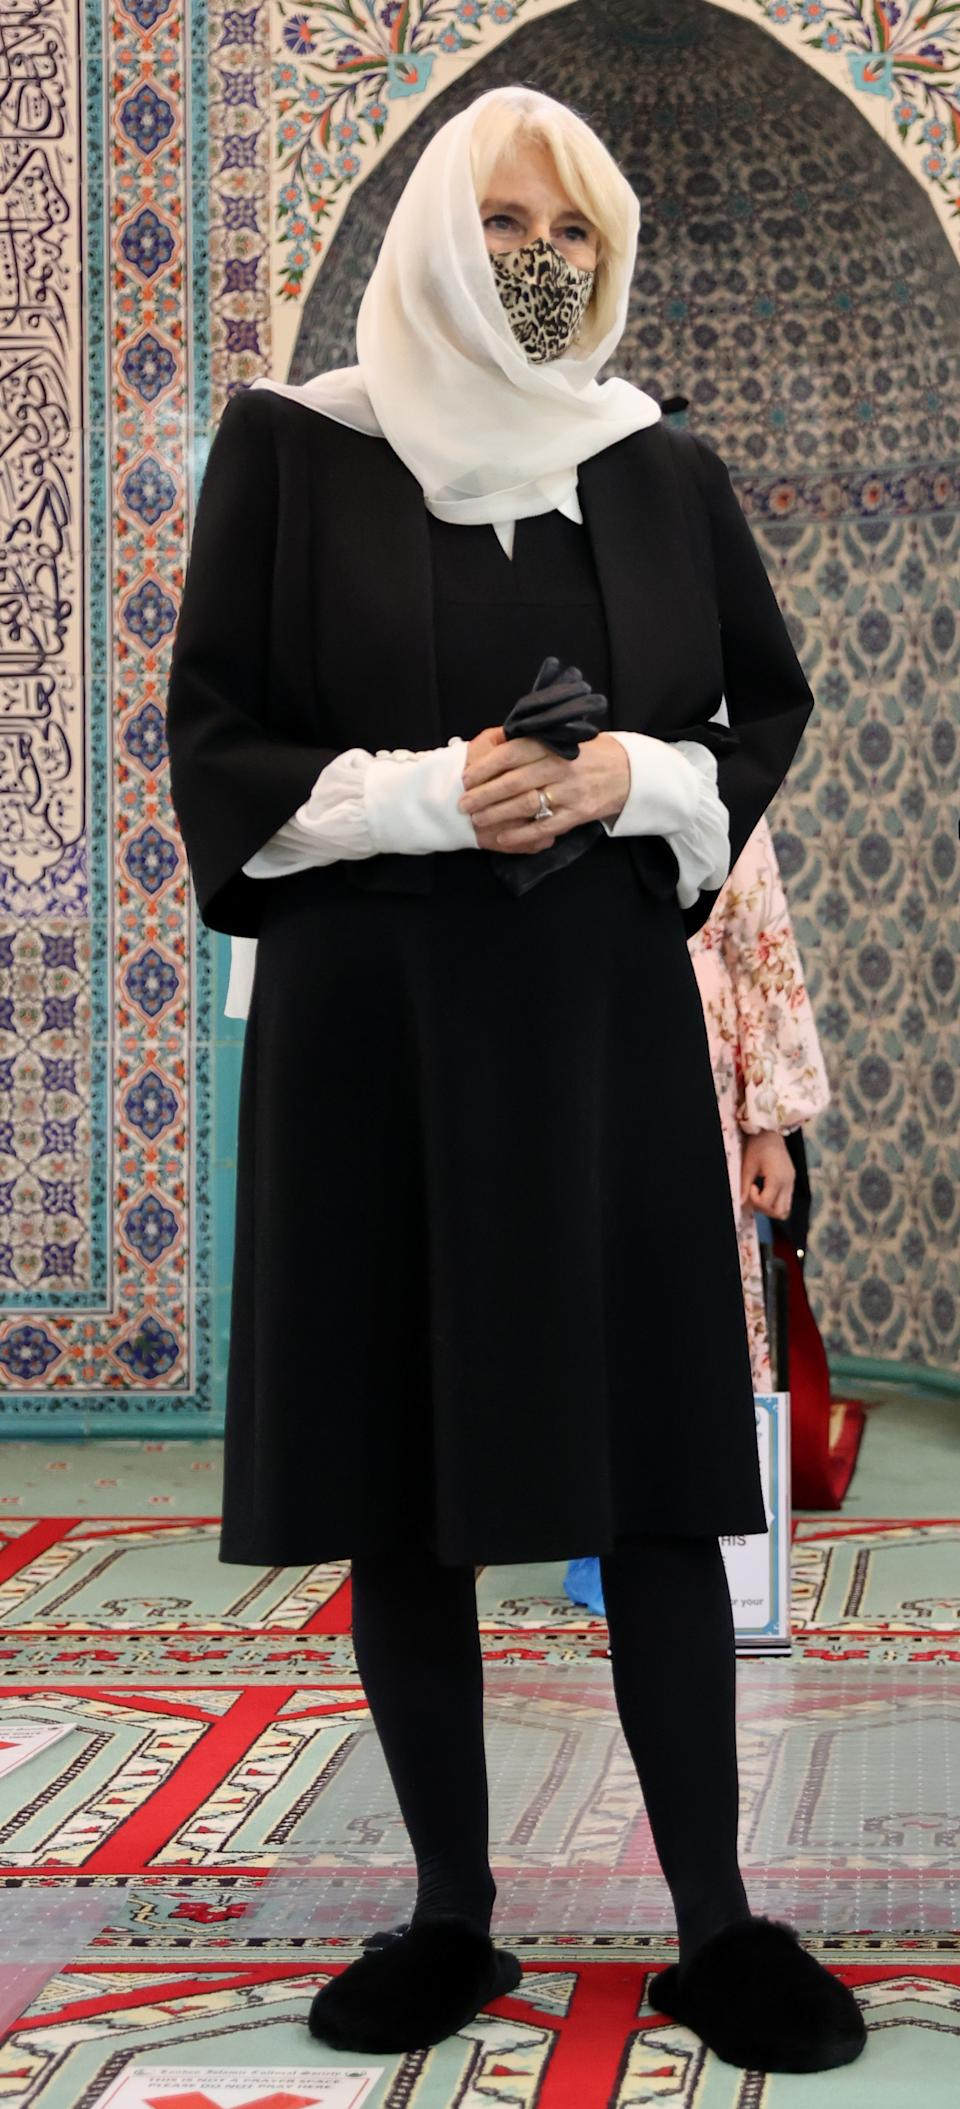 The Duchess of Cornwall visited Wightman Road Mosque on 7 April in London, England. (Getty Images)